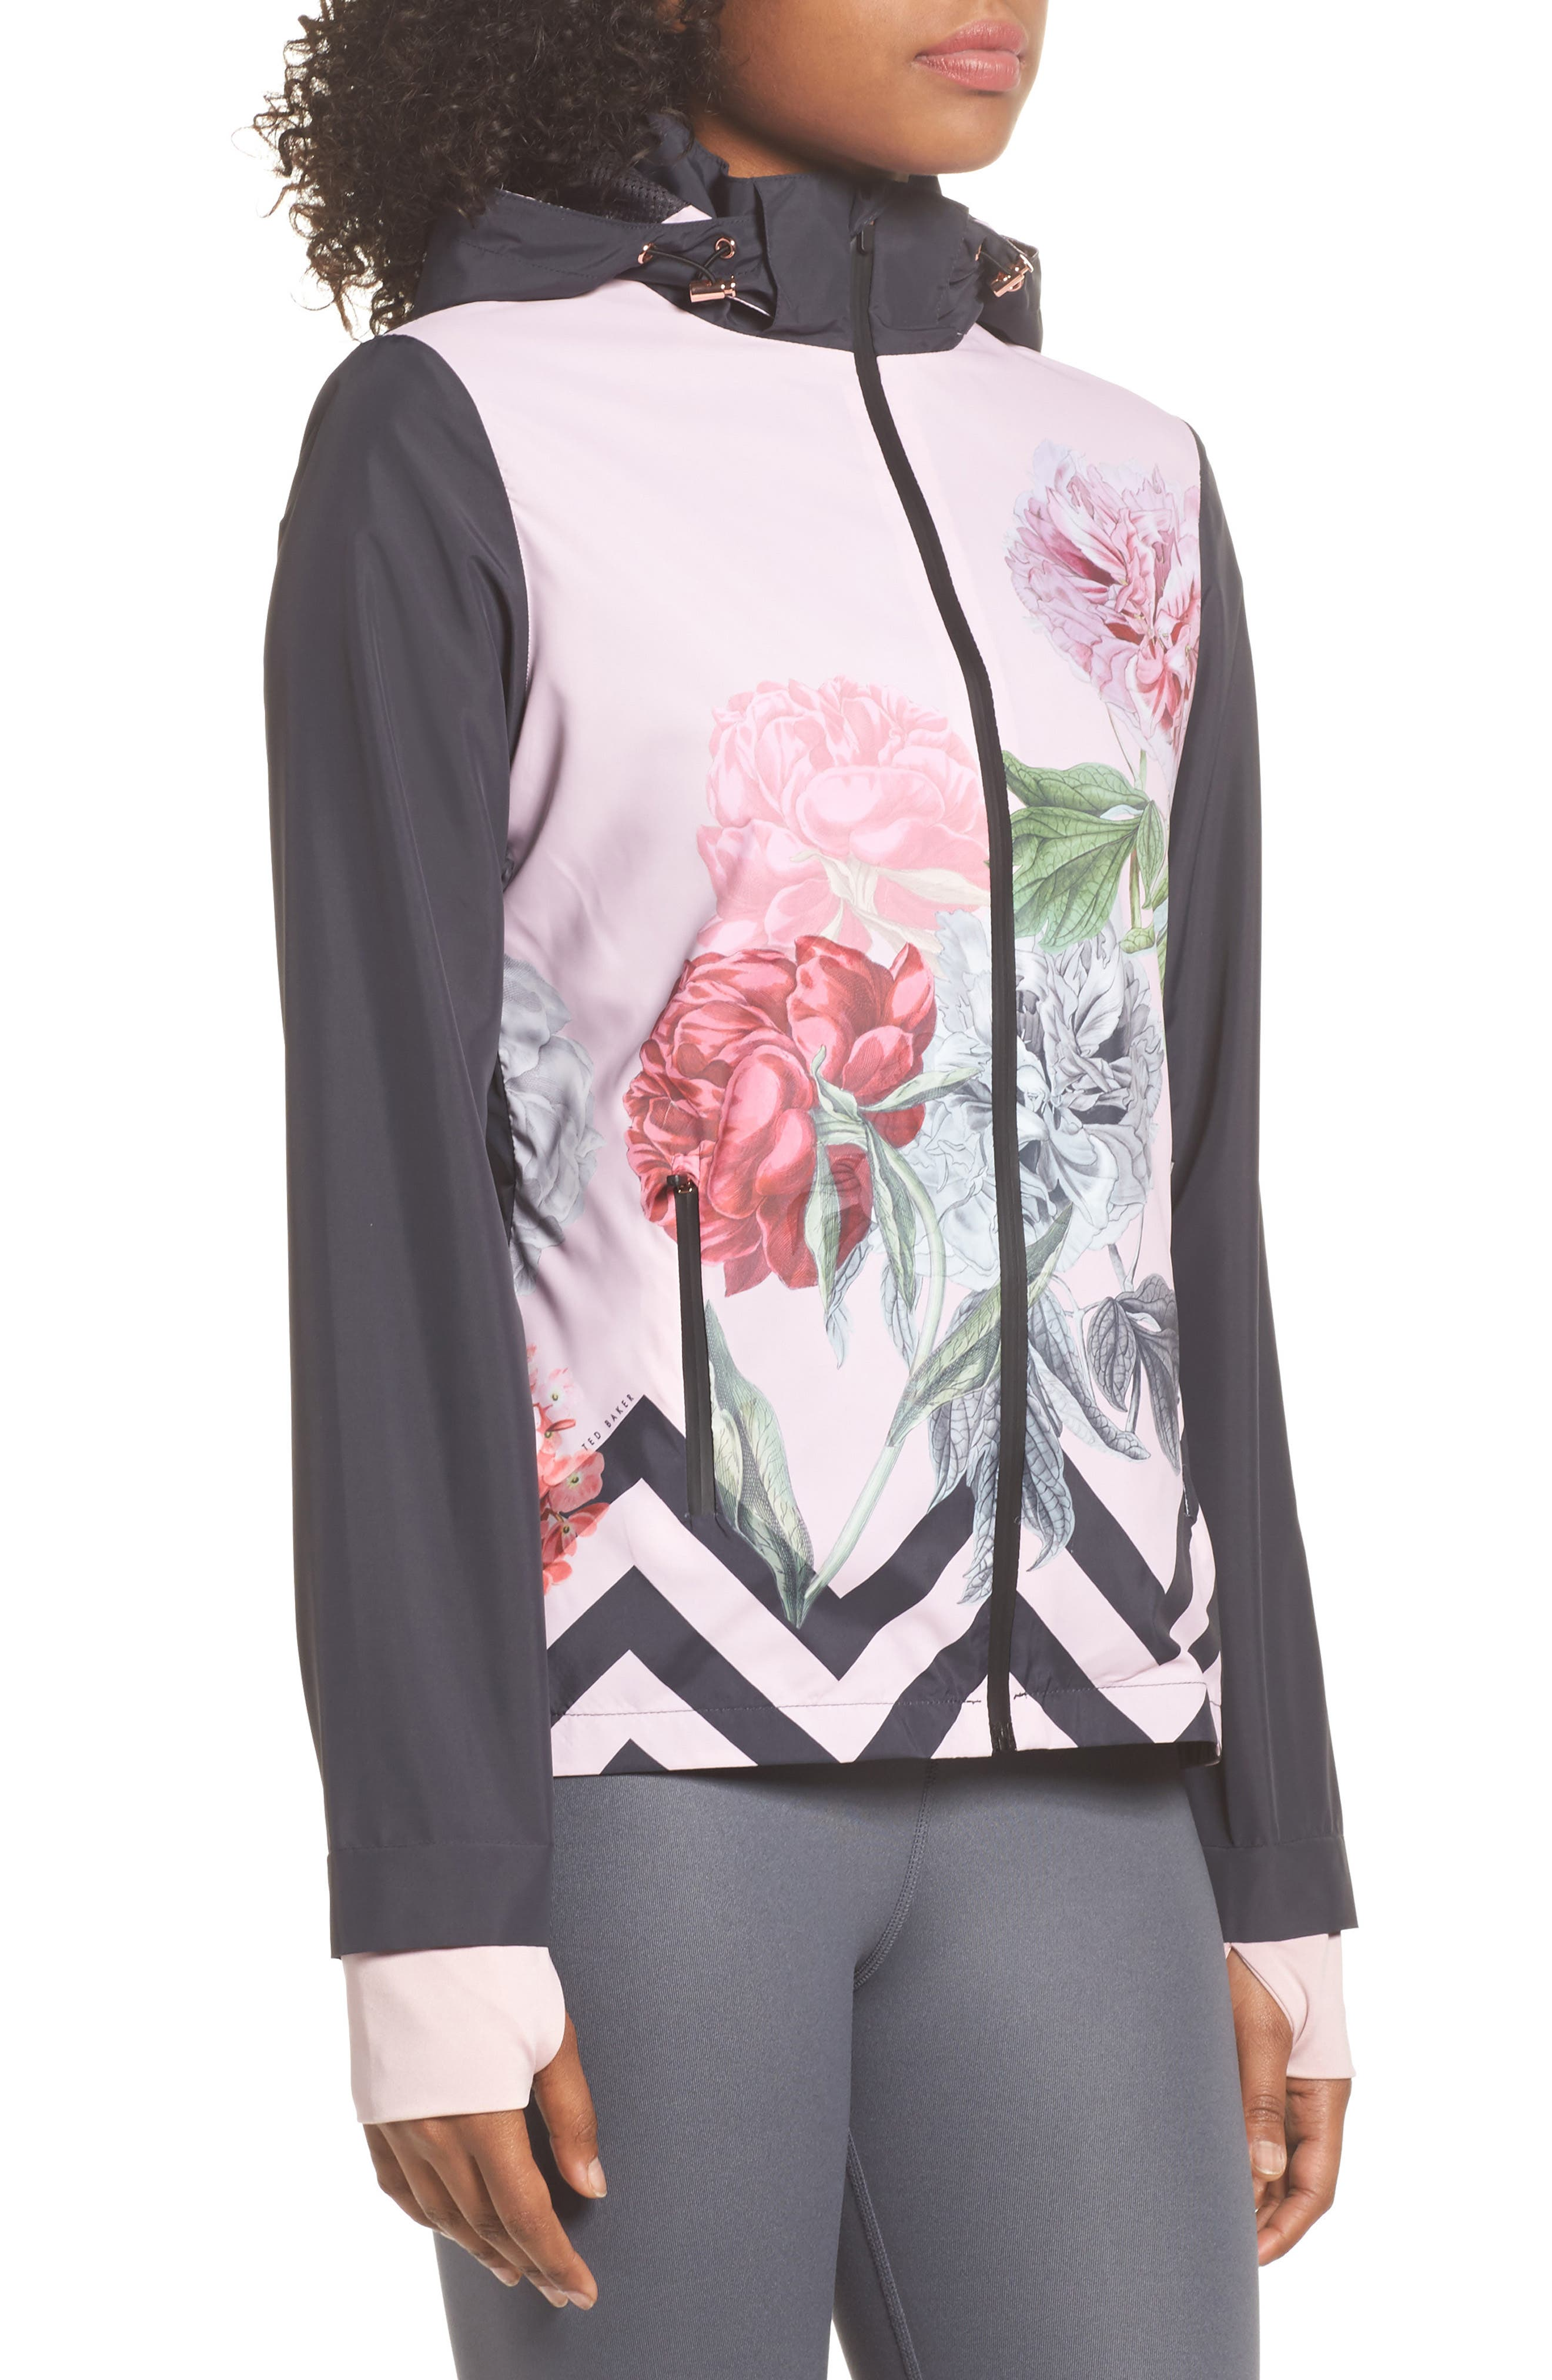 Palace Gardens Print Hooded Jacket,                             Alternate thumbnail 3, color,                             005